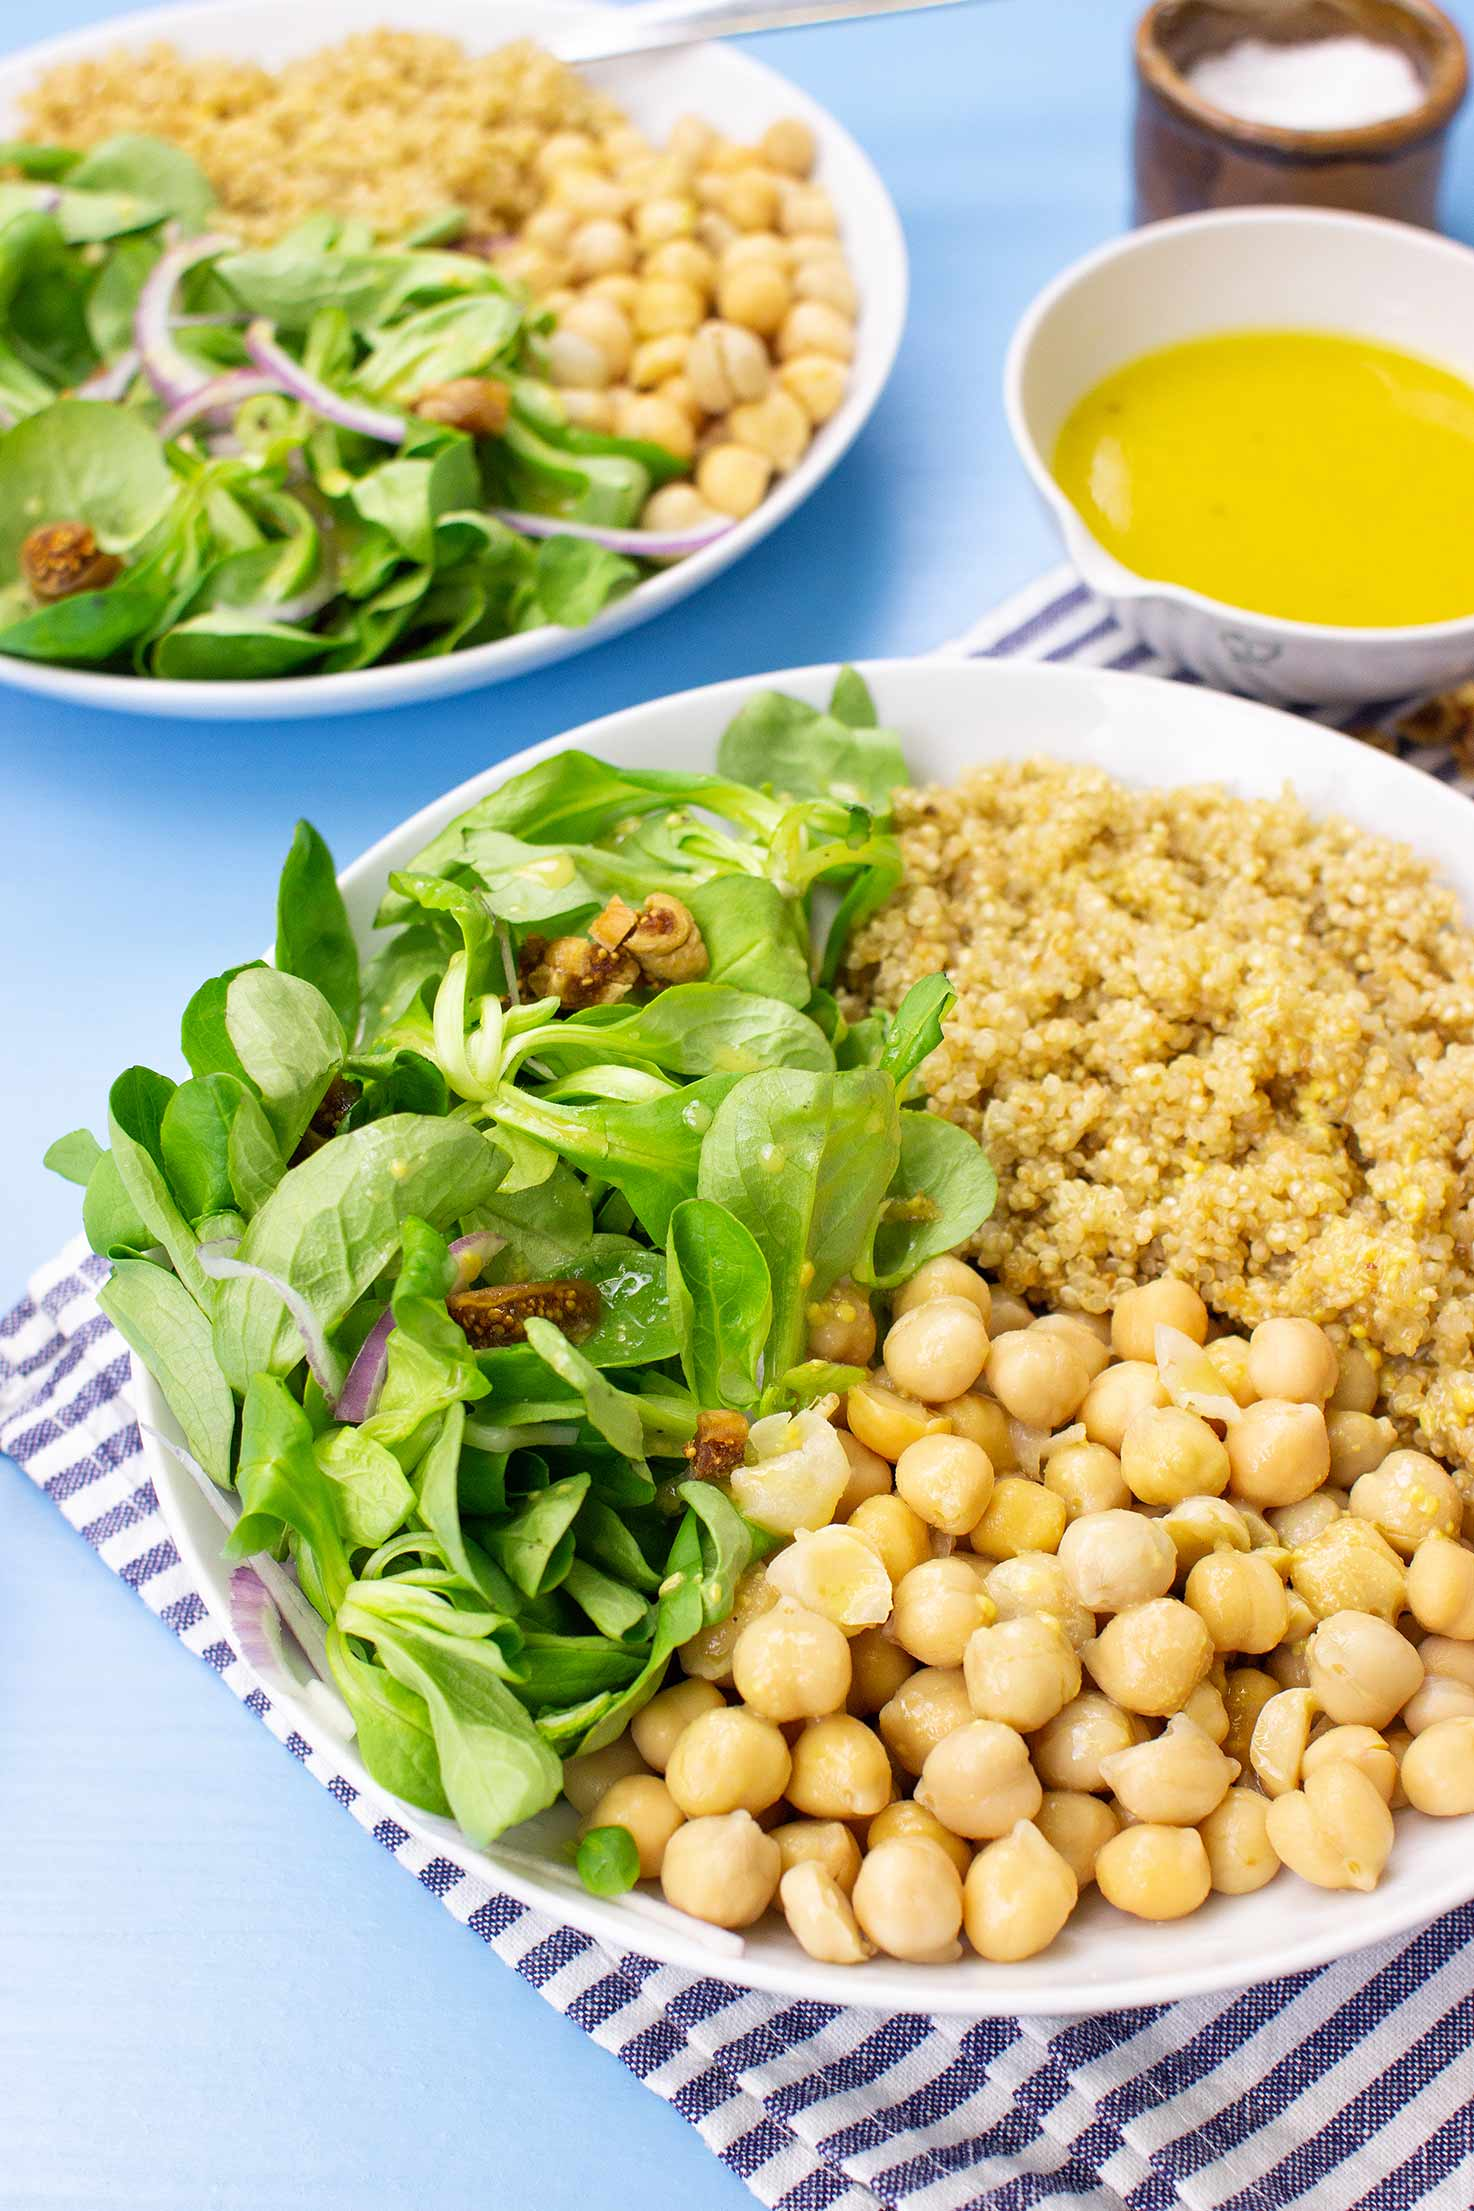 The meal with corn salad are on the table on 2 plates with towel, salt and dressing #olive oil #white vinegar   hurrythefoodup.com